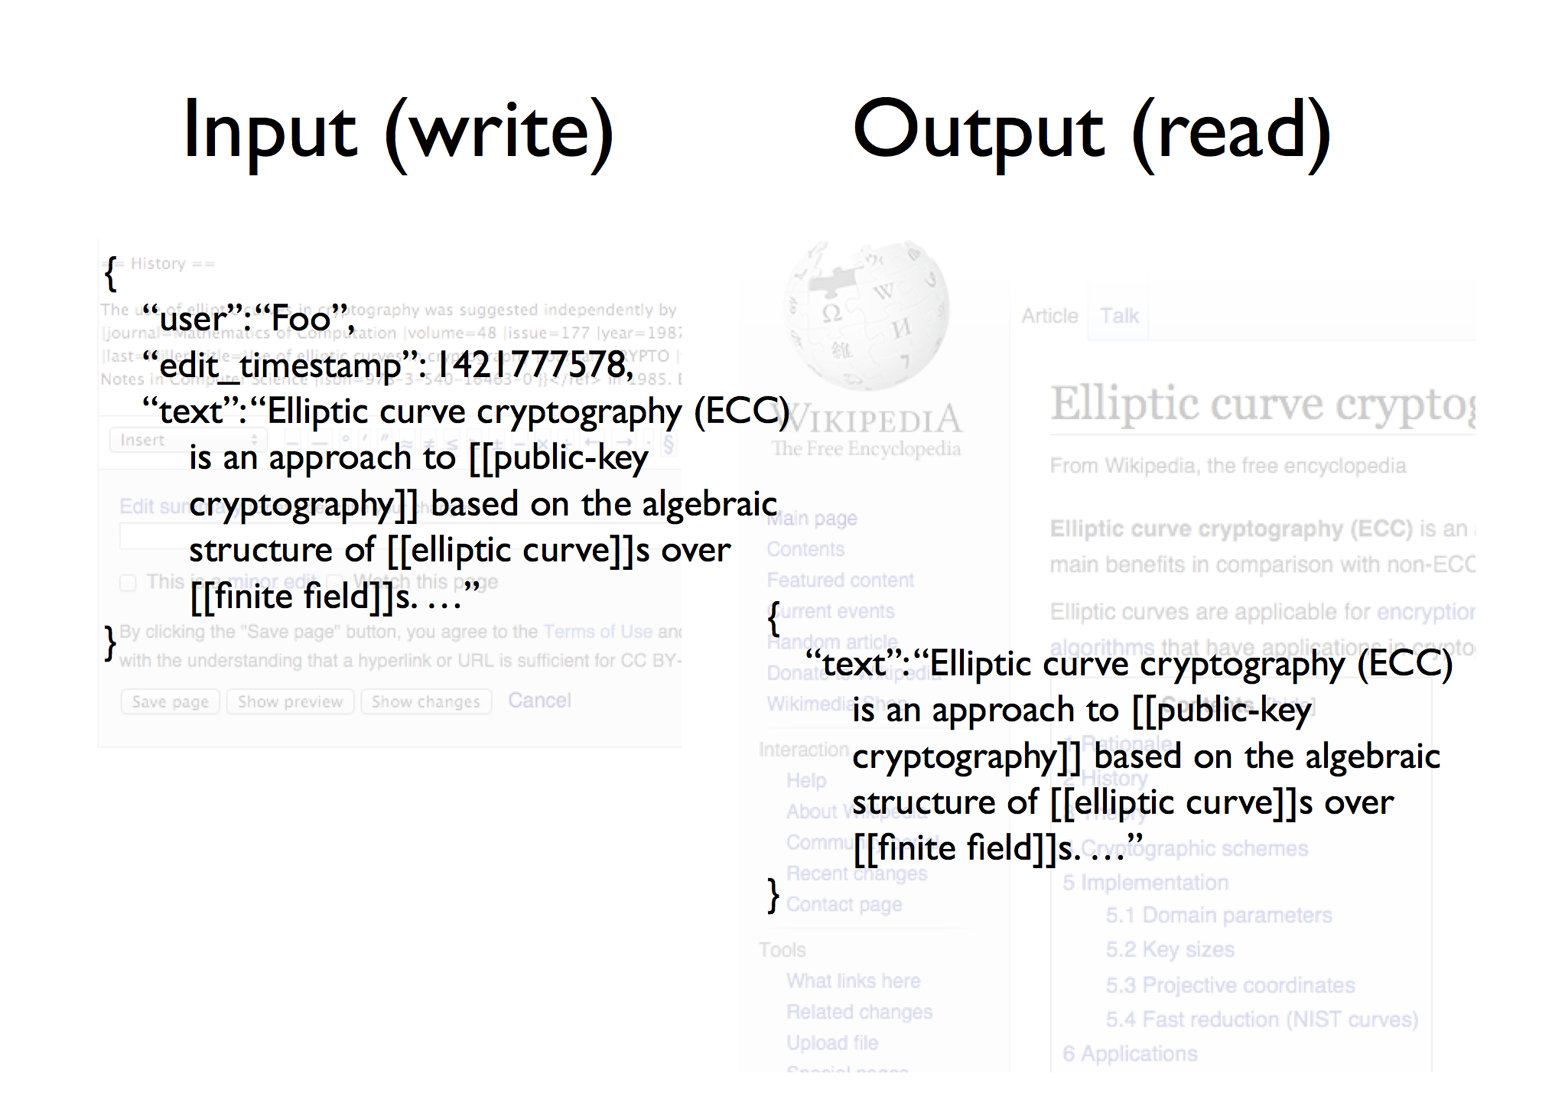 On Wikipedia, the input and the output are almost the same.